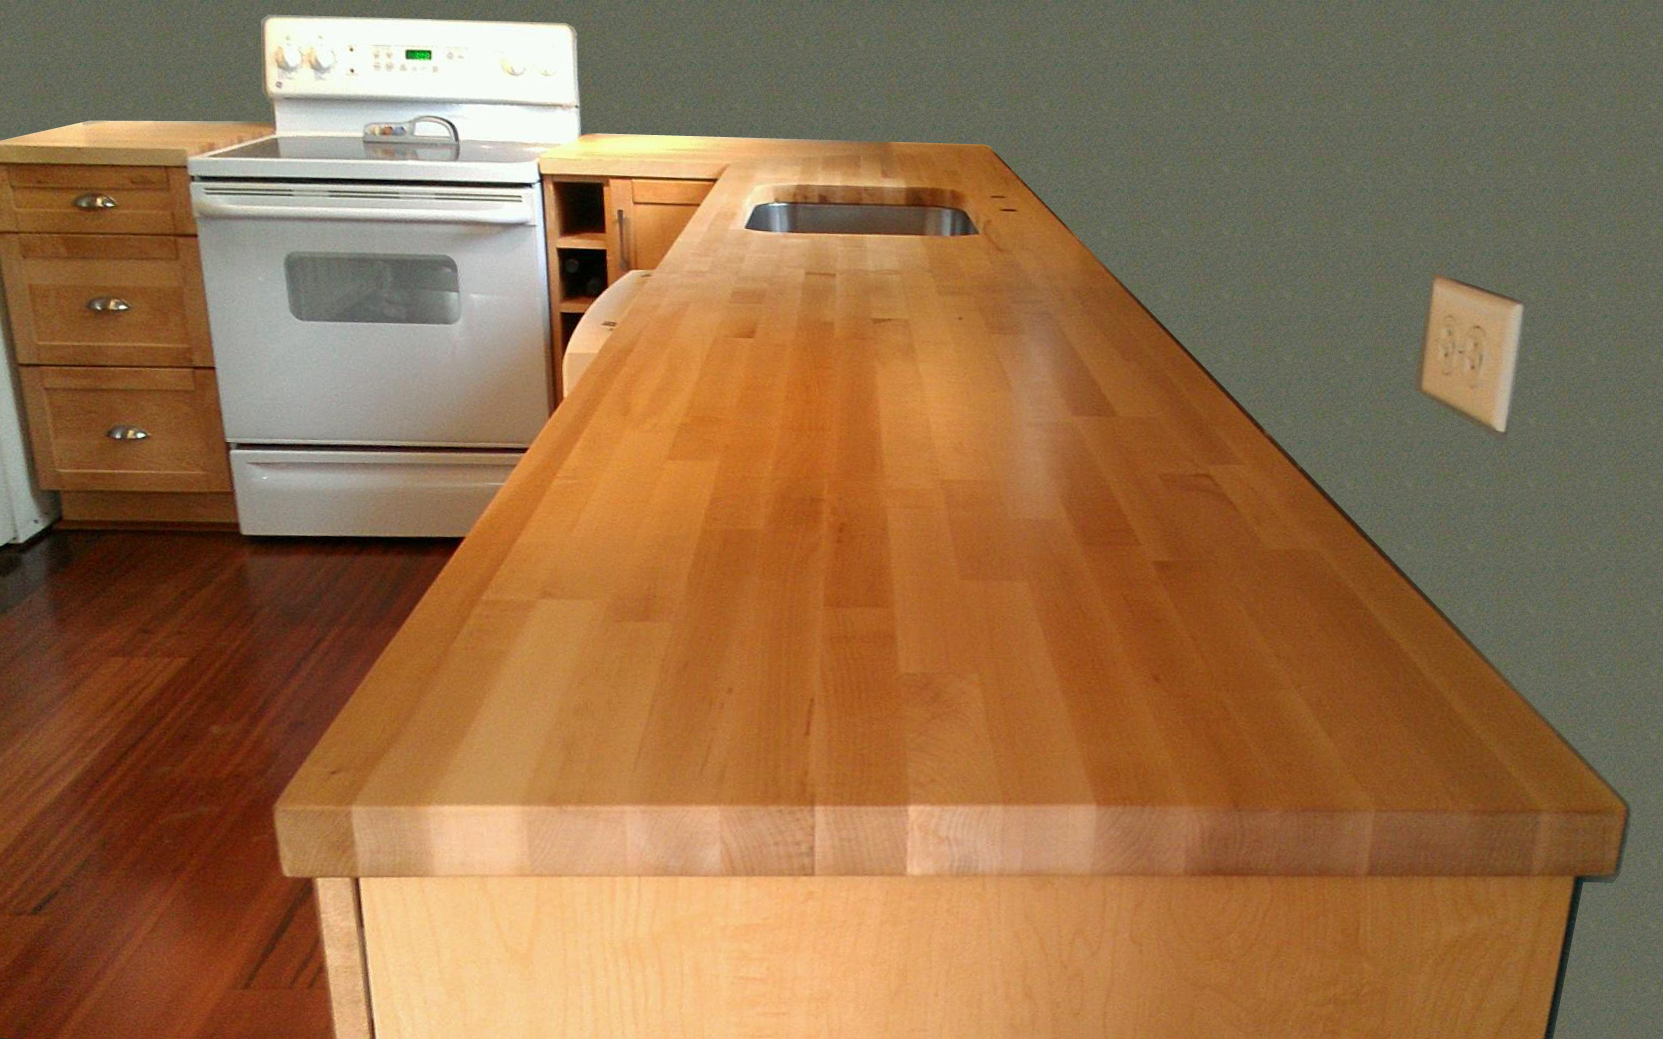 Hard Maple Butcher Block Countertop Countertops Faq